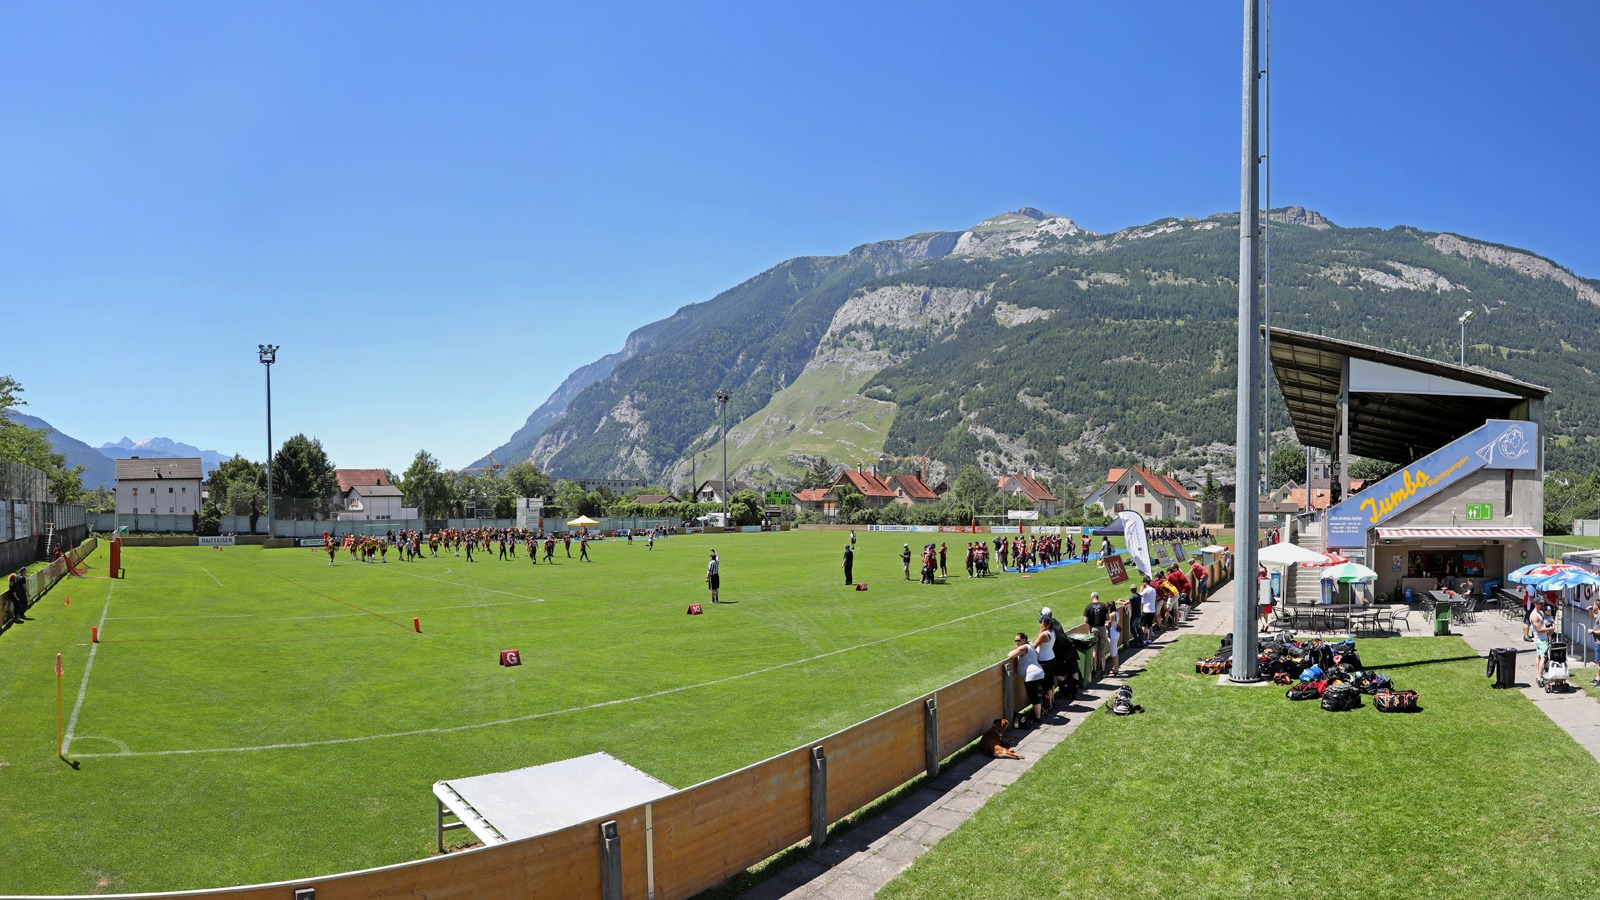 Calanda Broncos vs Winterthur Warriors | Stadion Ringstrasse